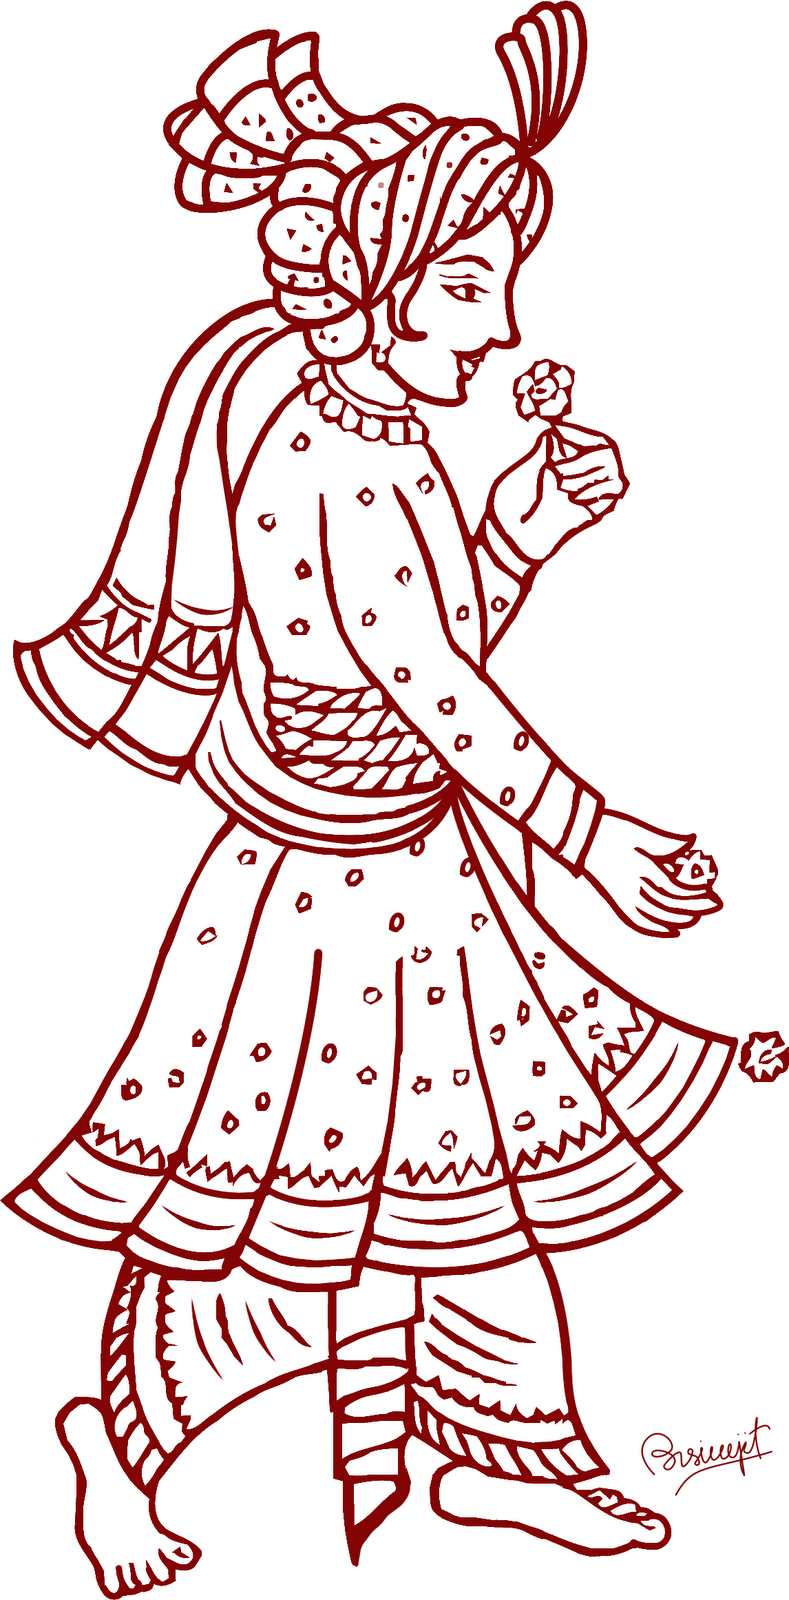 Wedding Png Clipart Bride And Groom Transparent Png Images Free Transparent Png Logos